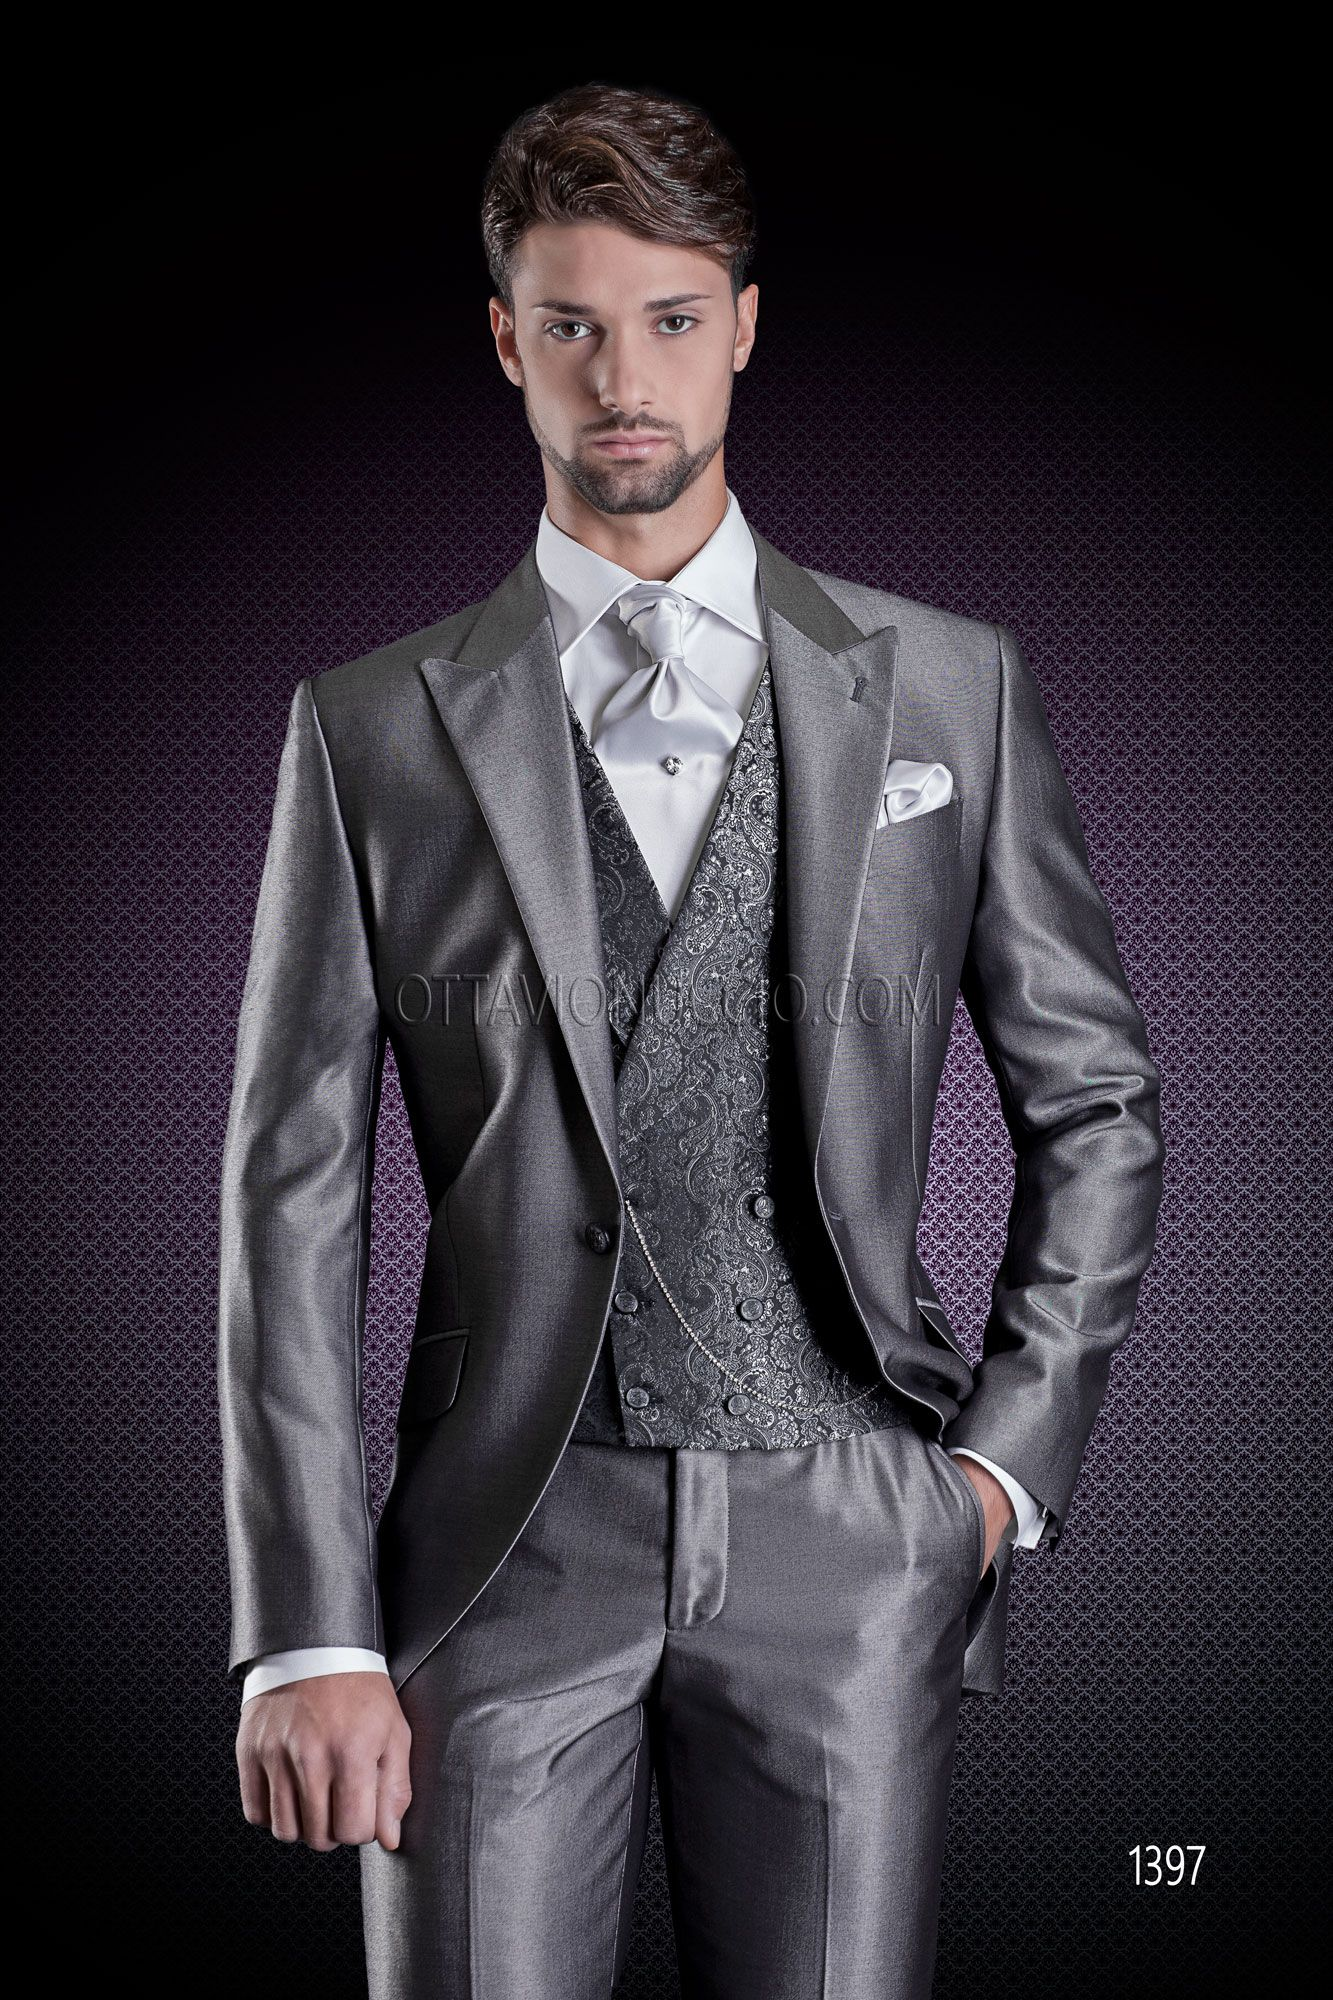 jacket+pants+vest+tie K:1385 Special Buy New Arrival Mens Dinner Party Prom Suits Groom Tuxedos Groomsmen Wedding Blazer Suits